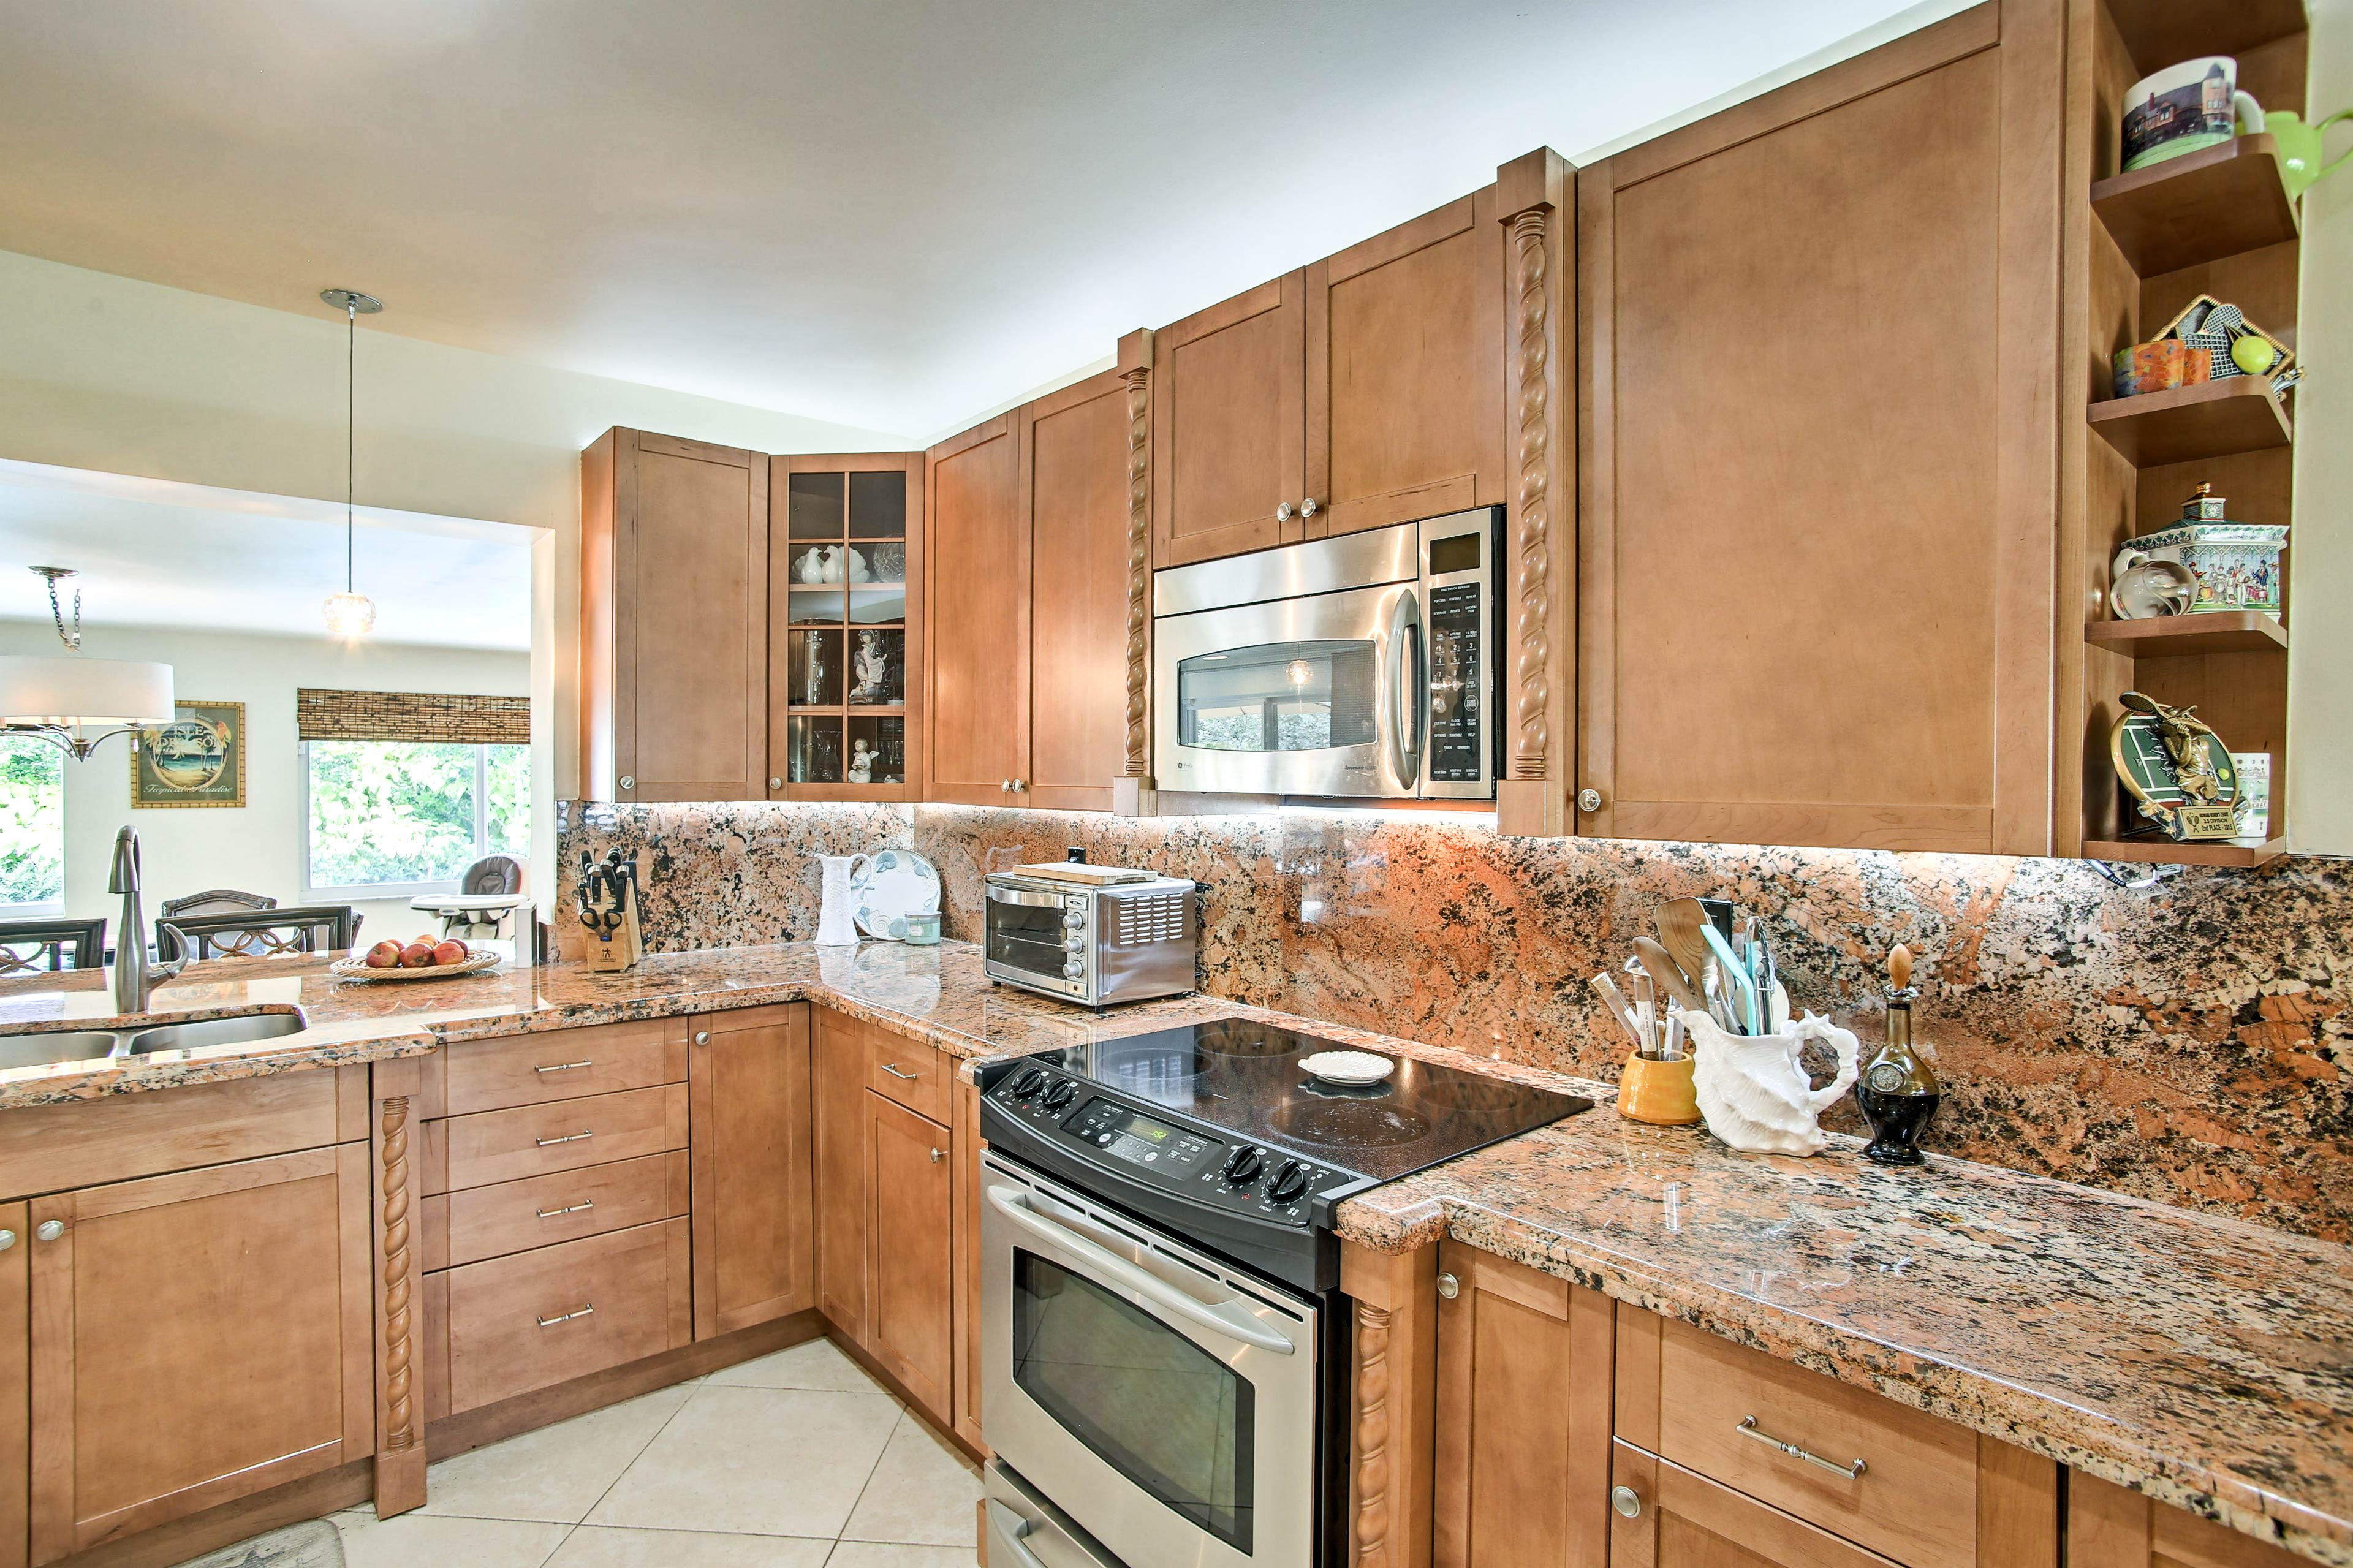 Modern appliances & granite countertops elevate your cooking experience.